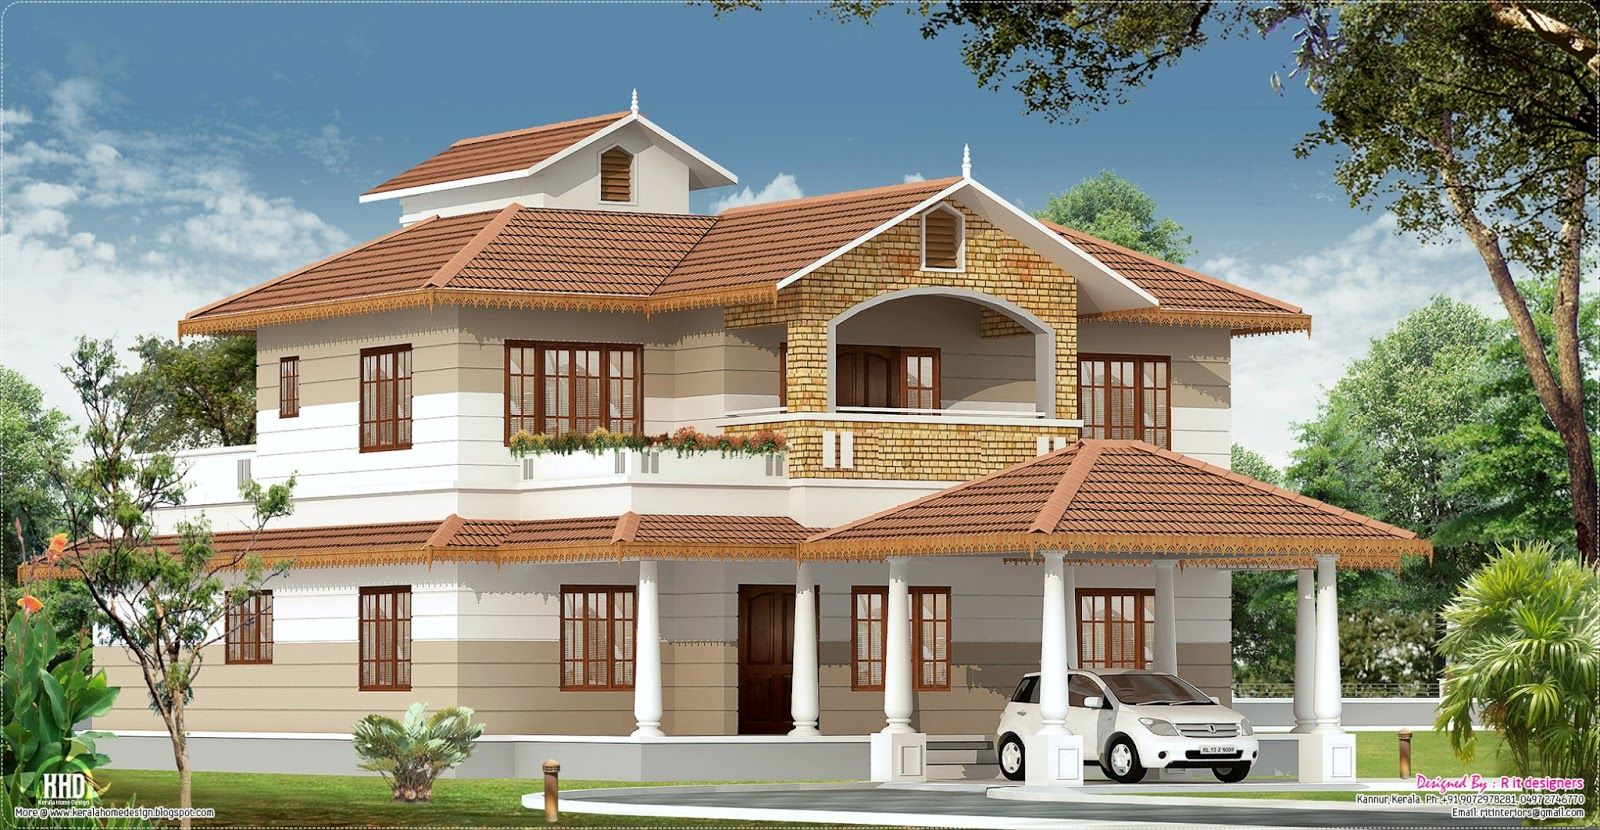 Kerala style home interior designs designers kannur kerala for House plan kerala style free download